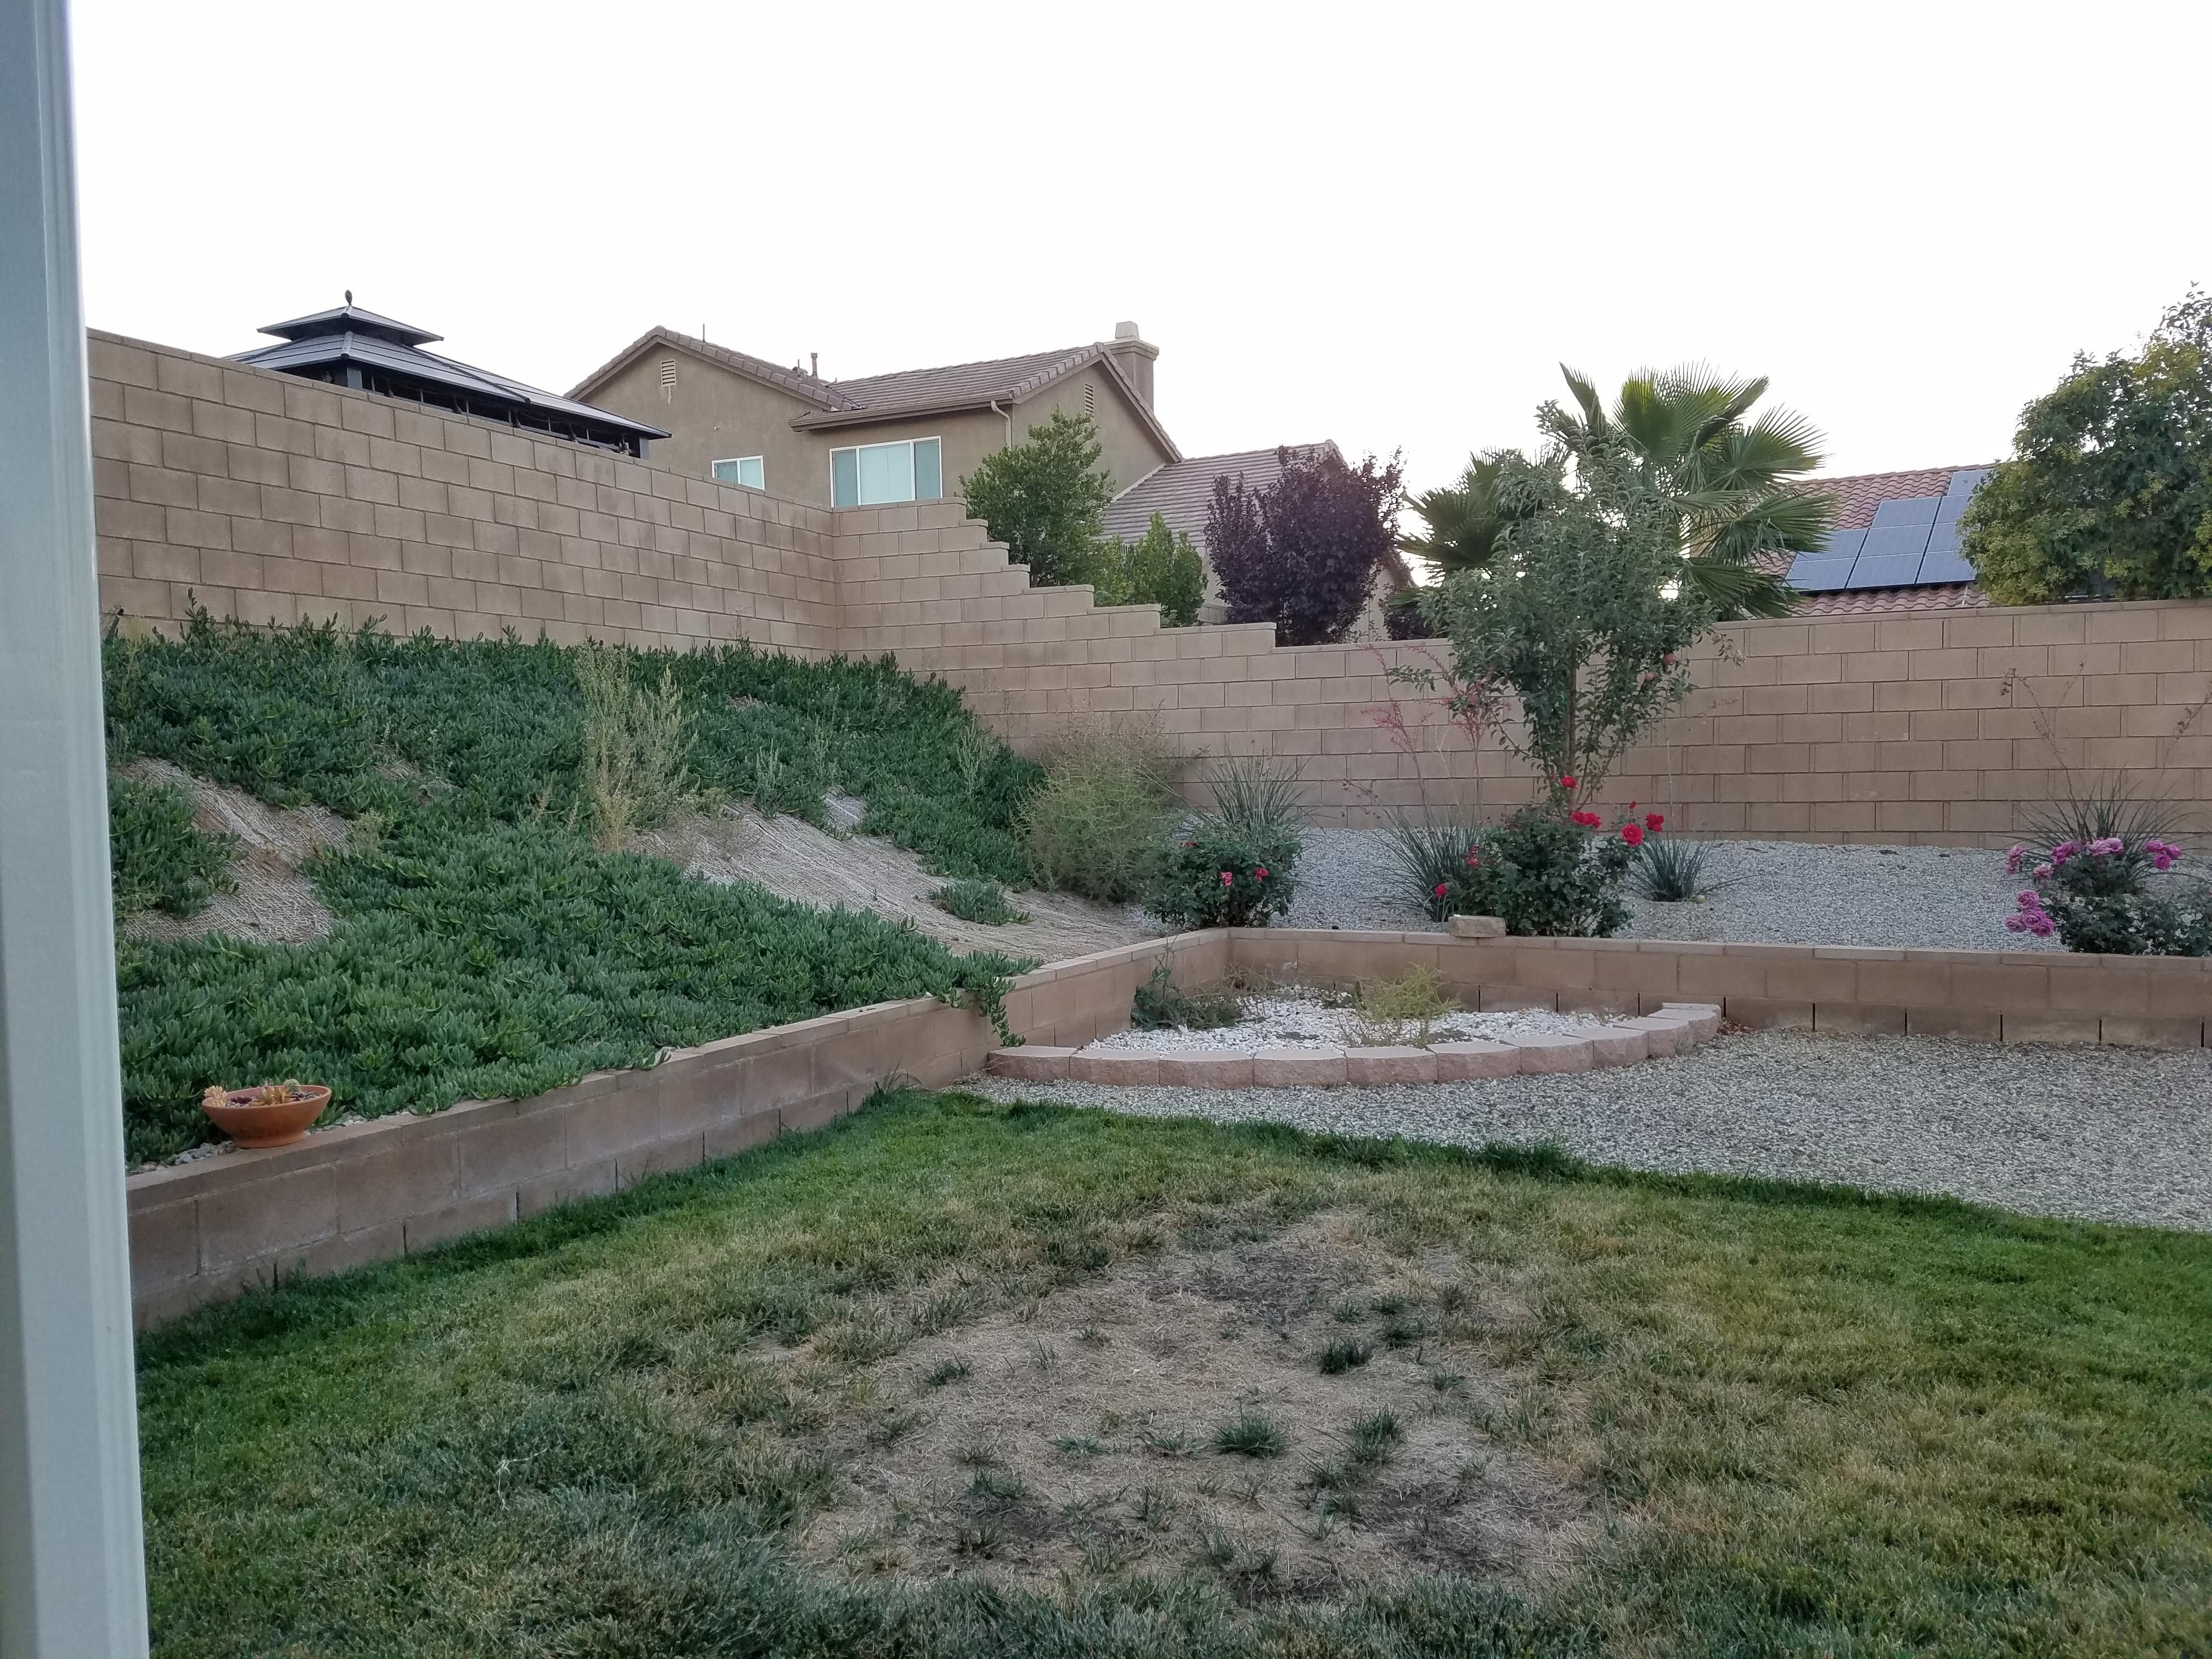 Advice on tree planting for backyard privacy #gardening #garden #DIY #home #flowers #roses #nature #landscaping #horticulture